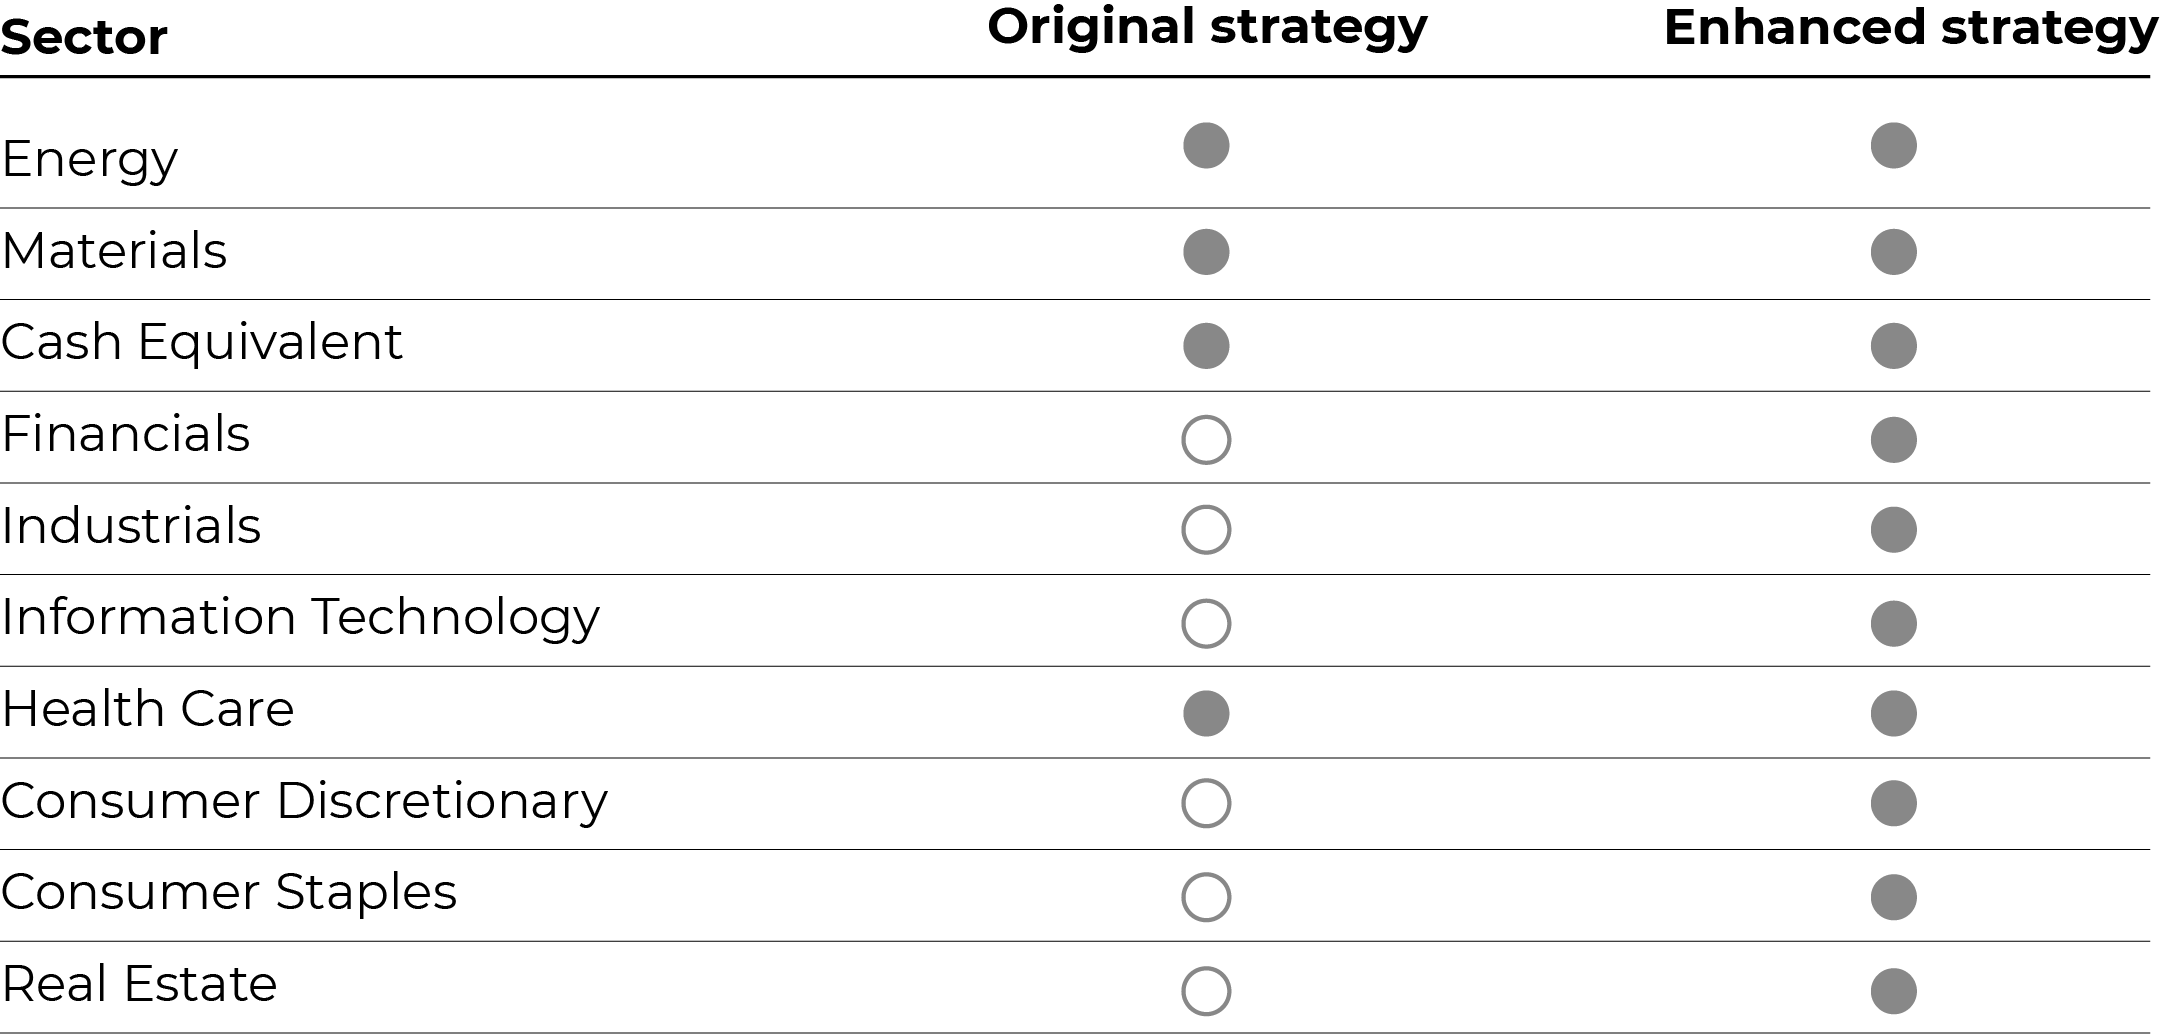 Table showing sector and strategy